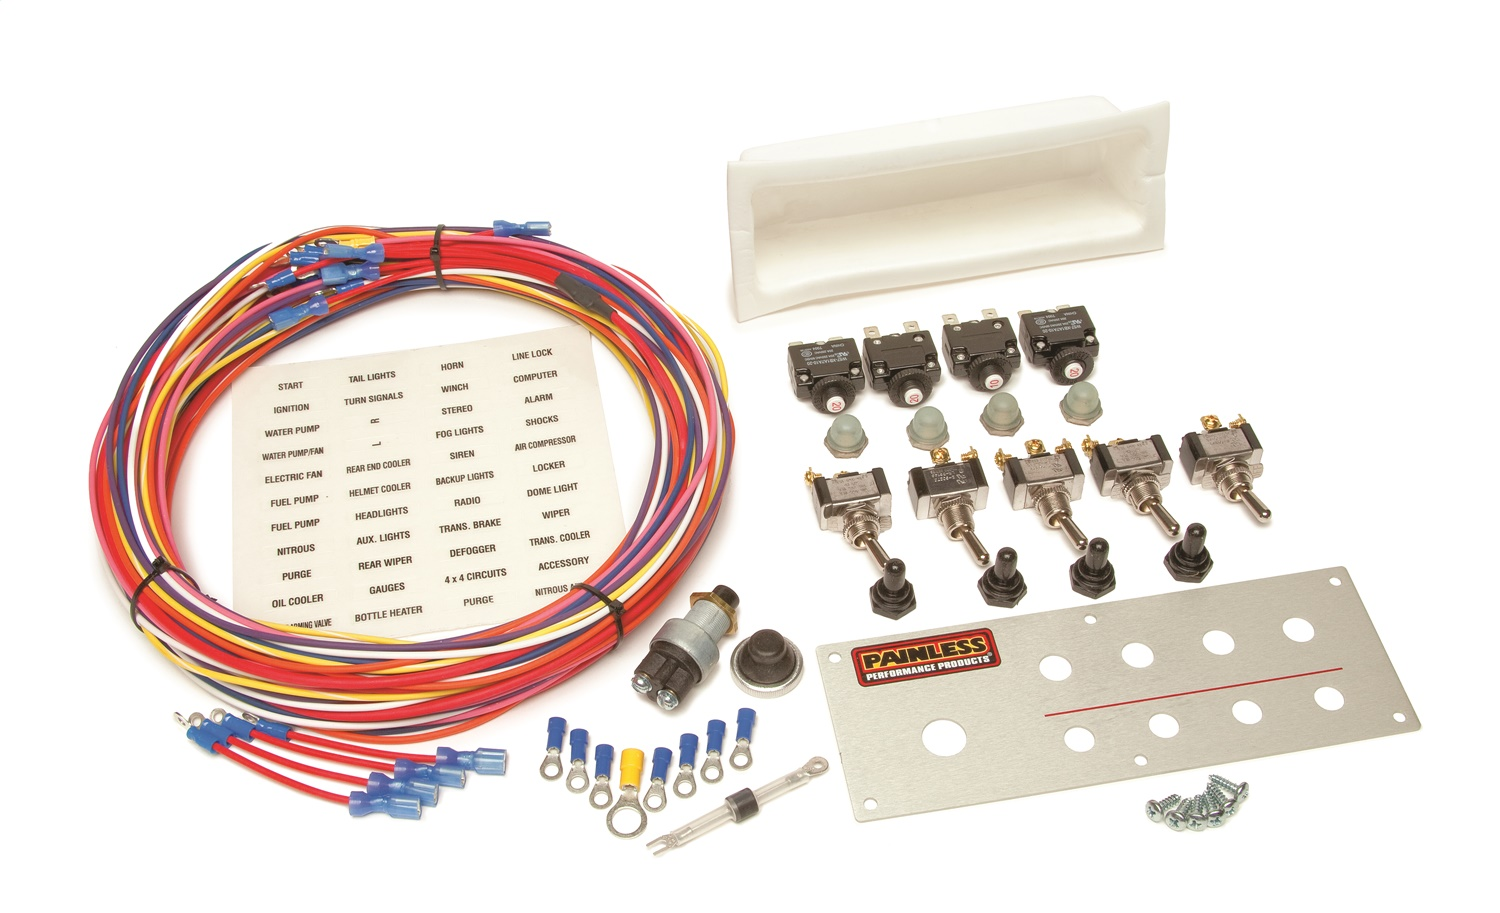 Painless Wiring 50334 Off-Road Toggle Switch Kit